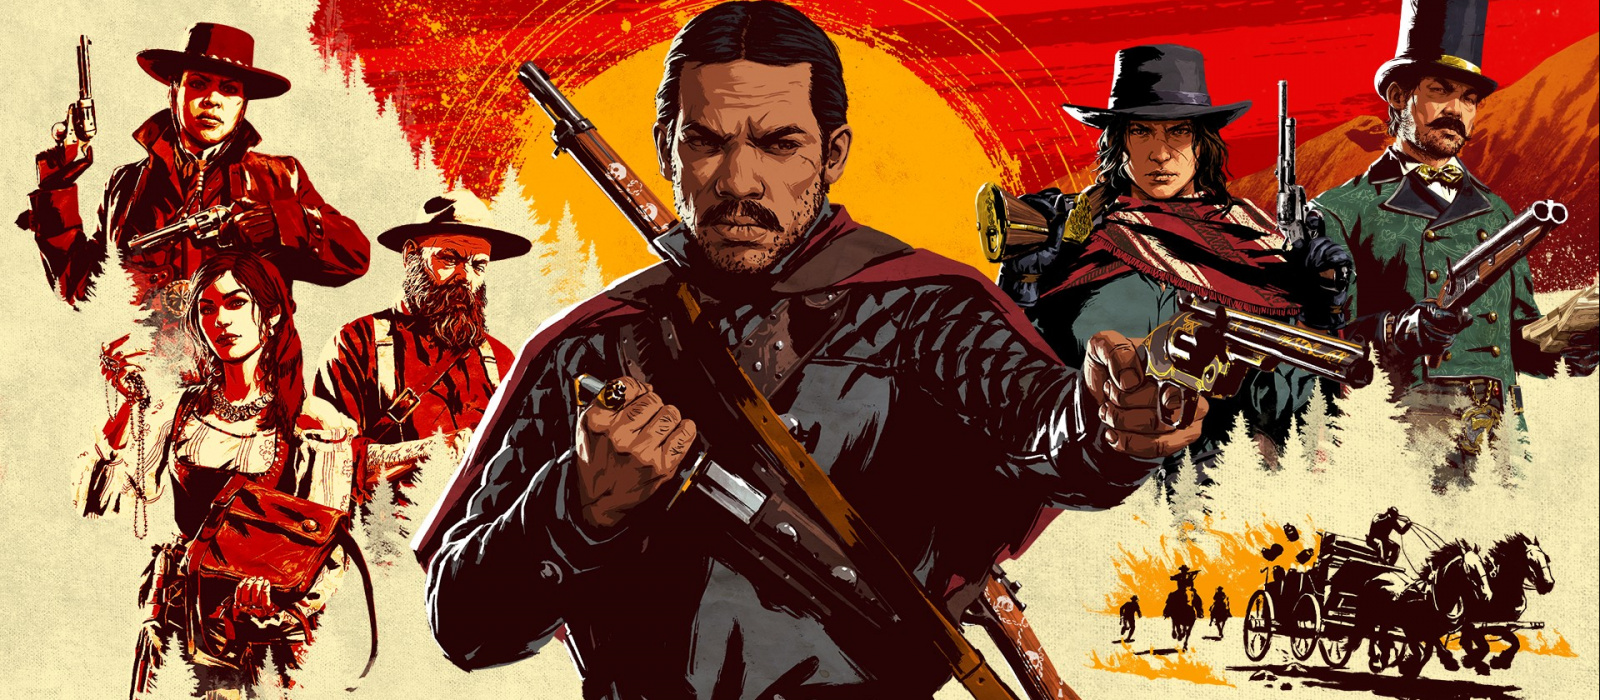 Red Dead Online - where to find the best starting weapons, how much it costs, how to improve